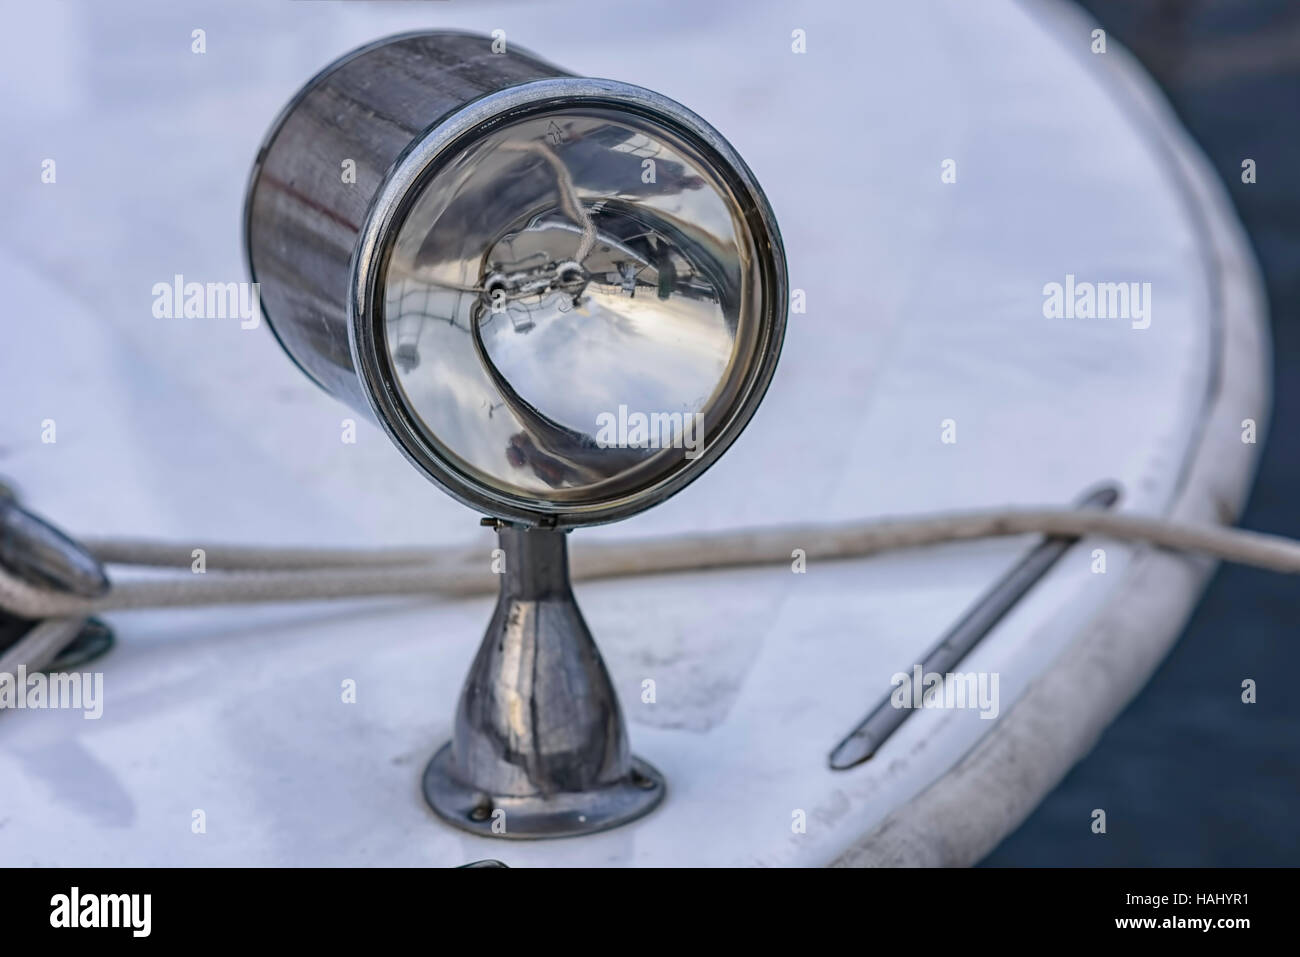 Spotlight on front of pleasure boat - Stock Image